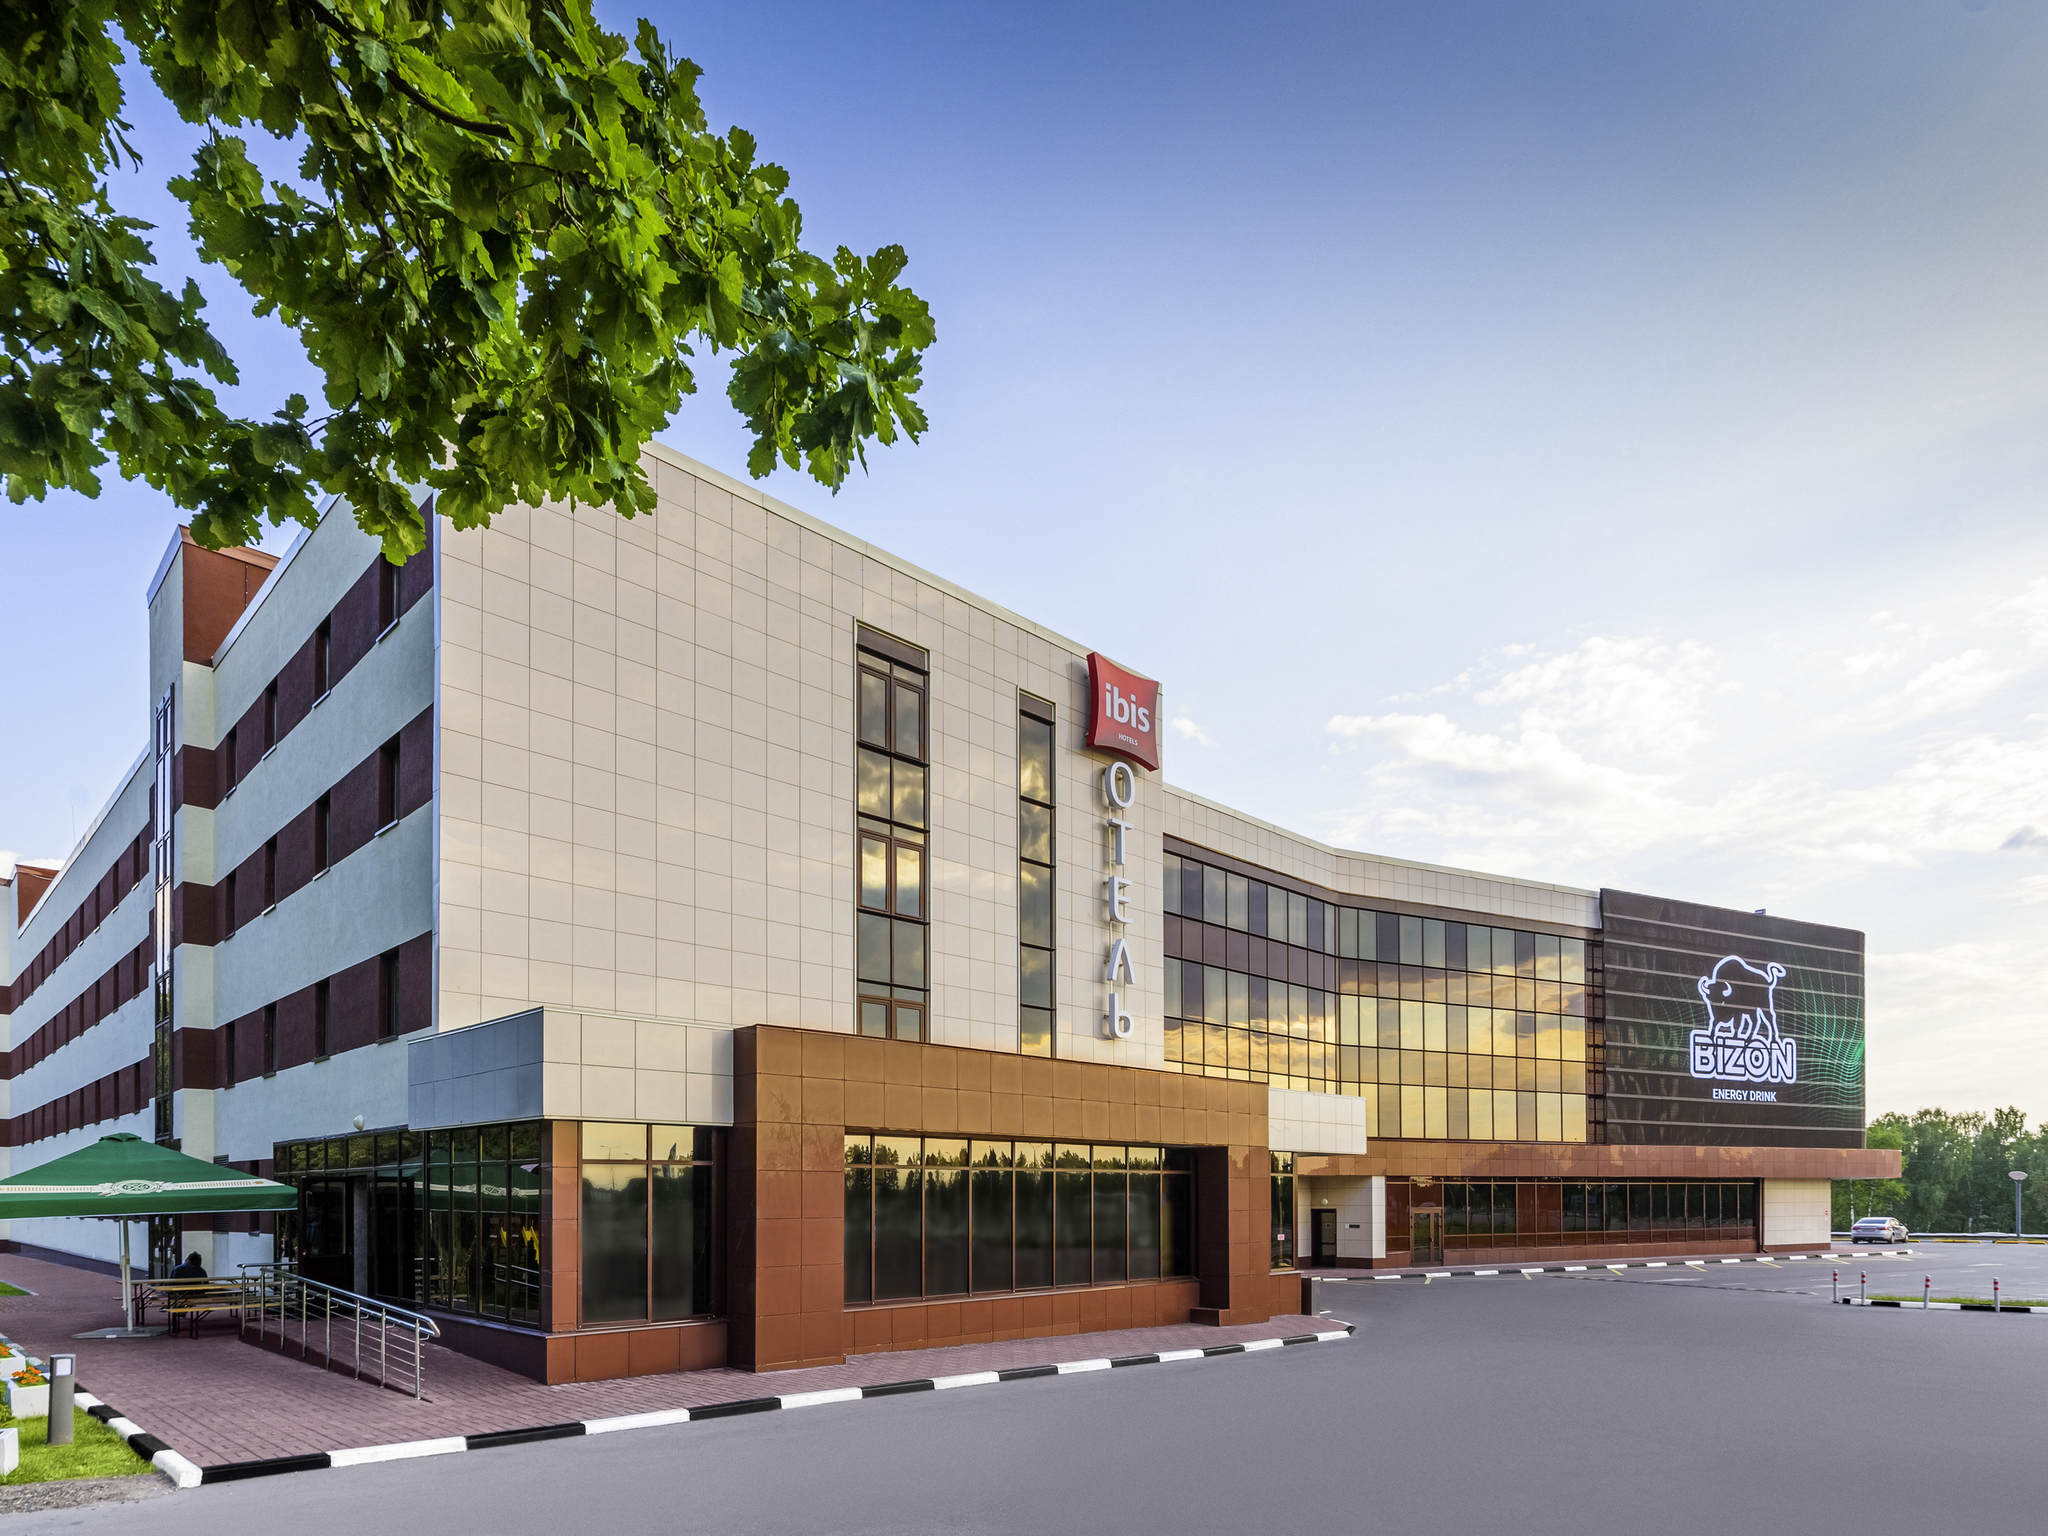 Hotell – ibis Moscow Domodedovo Airport